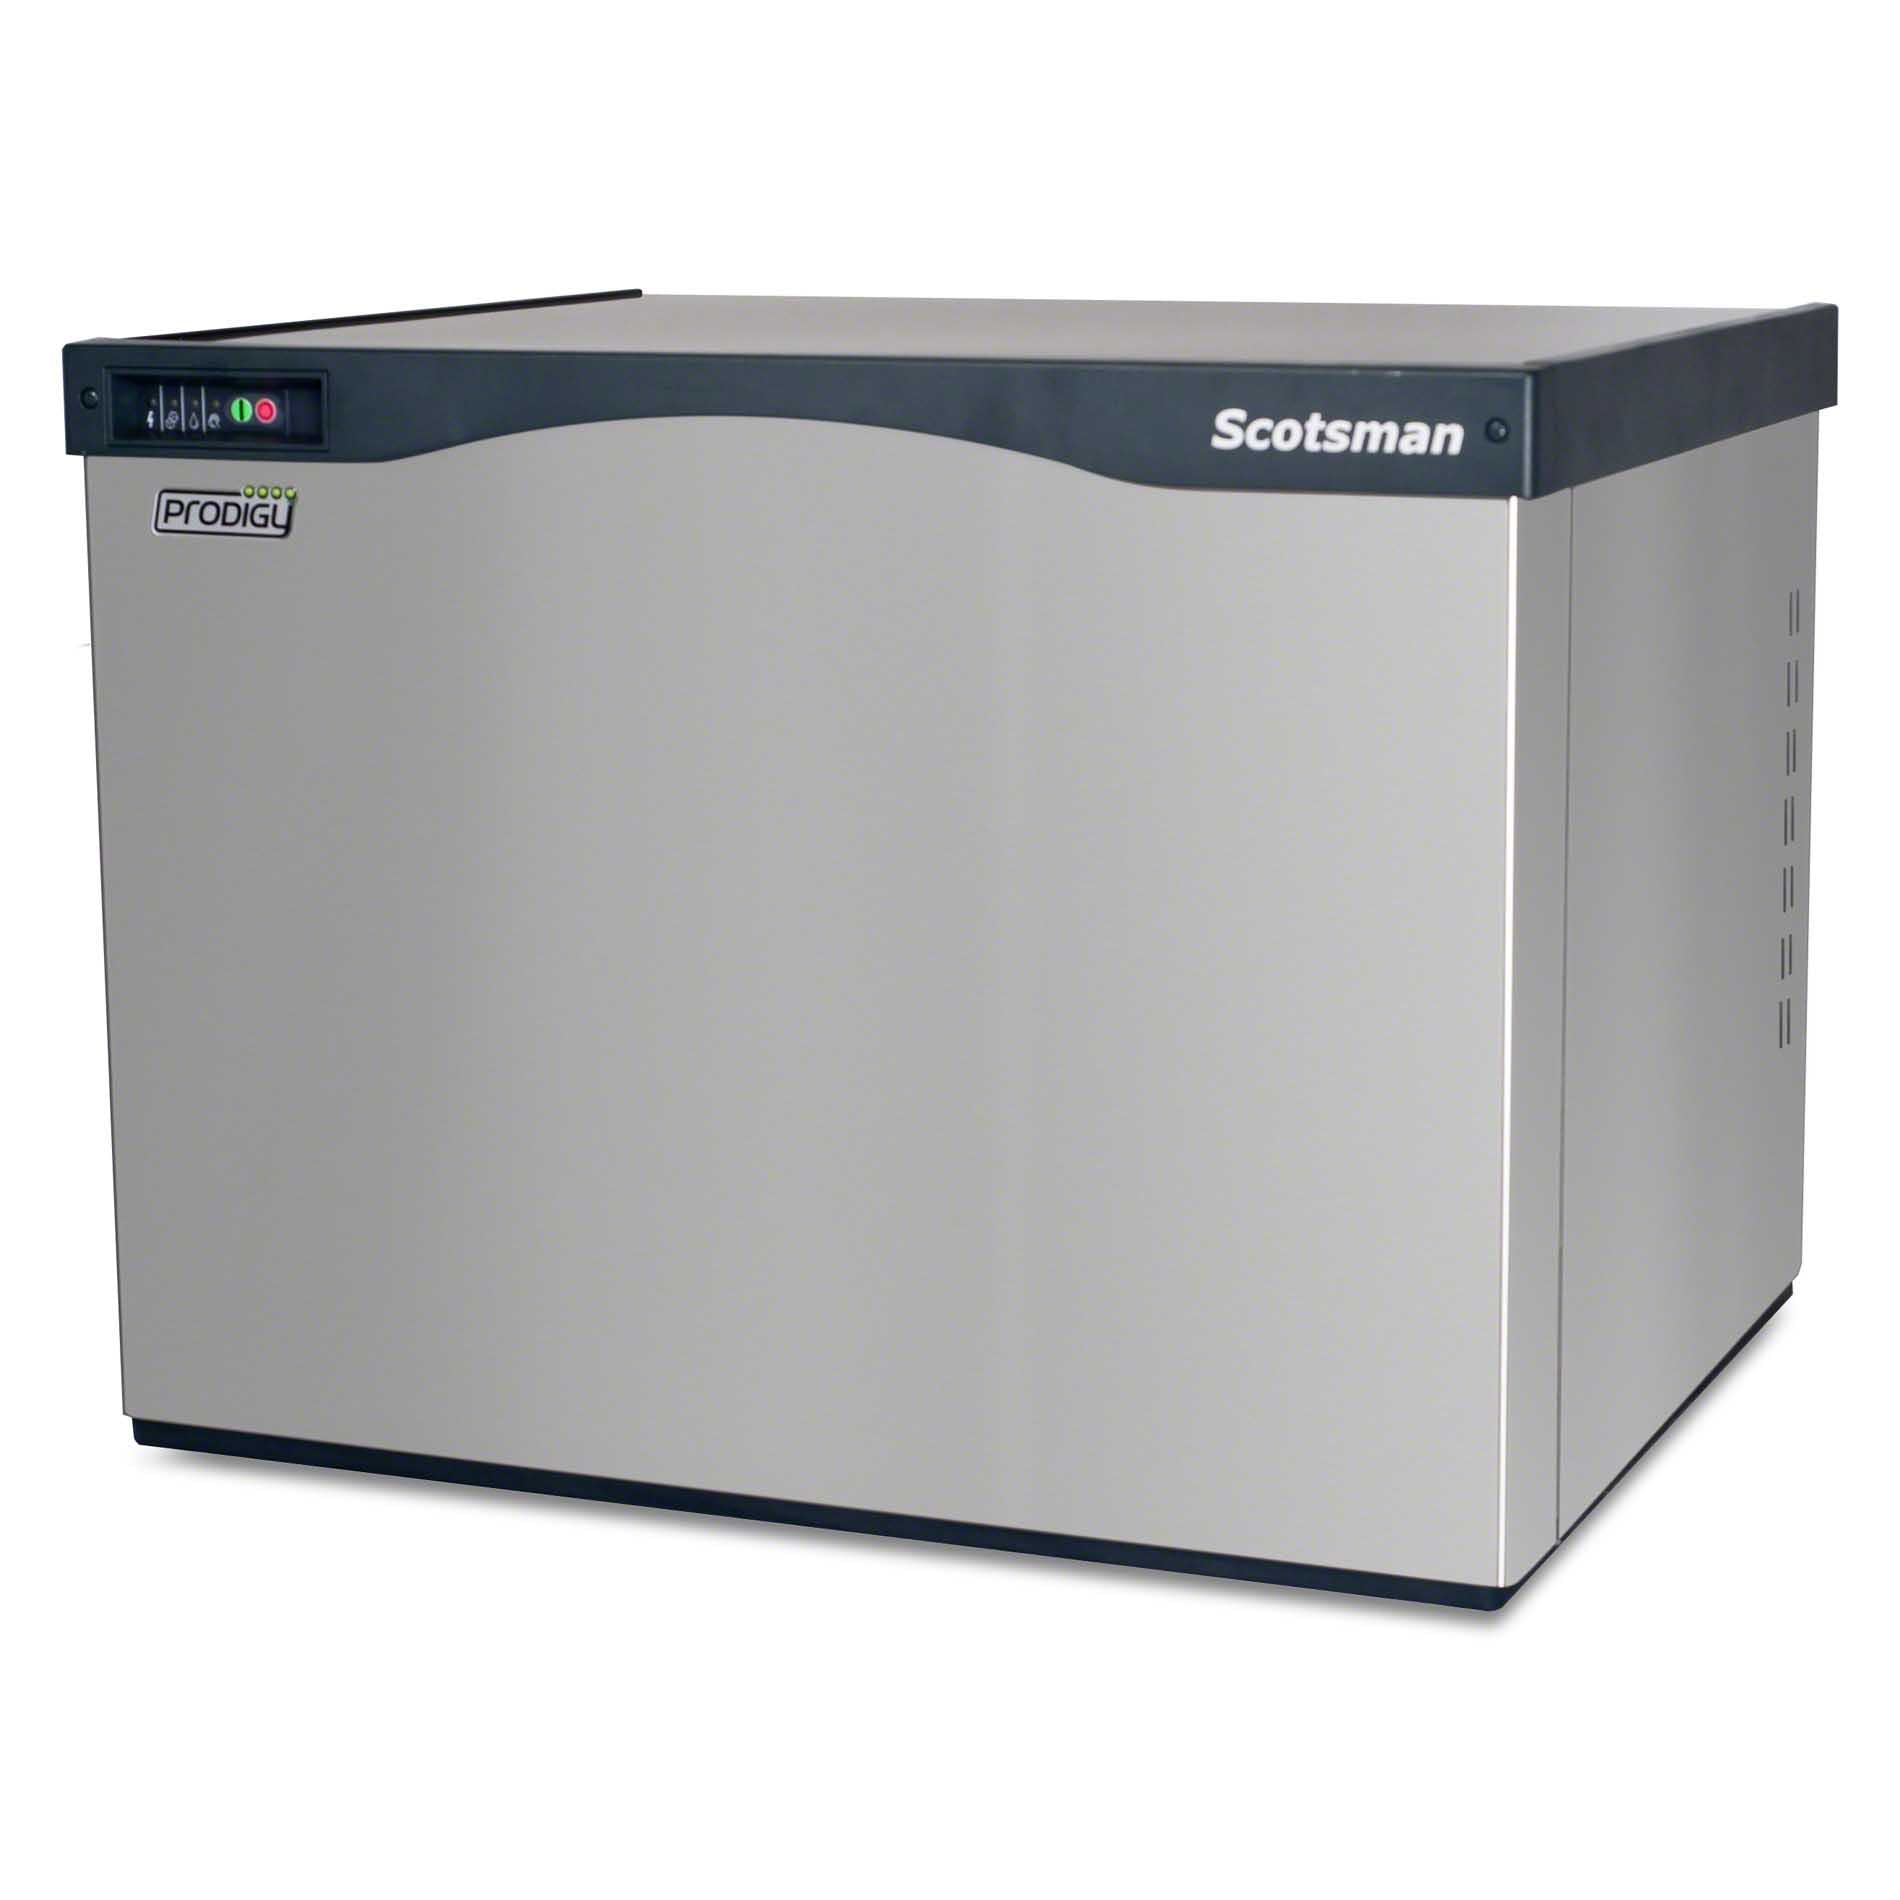 Scotsman - C0530SA-32A 562 lb Half Size Cube Ice Machine - Prodigy Series - sold by Food Service Warehouse